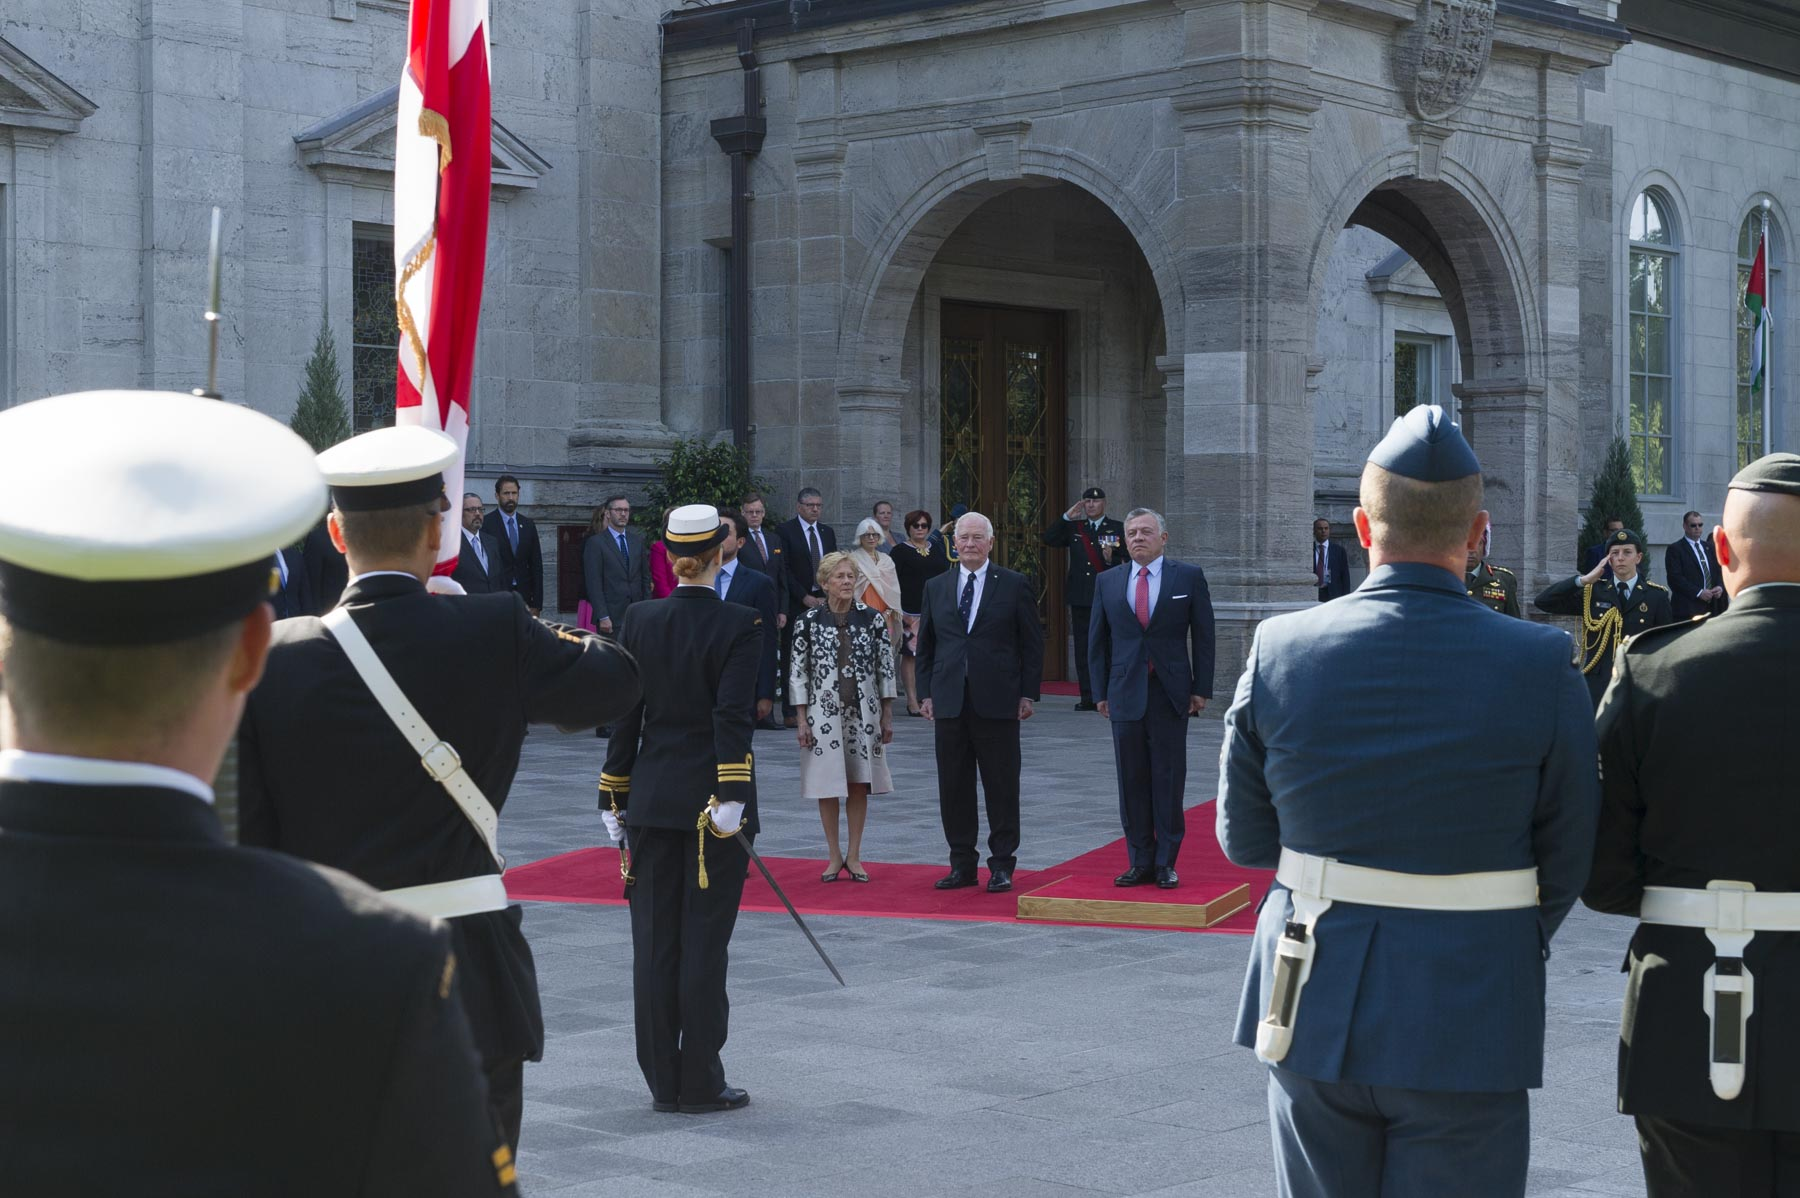 Their Excellencies were pleased to welcome His Majesty King Abdullah II ibn Al Hussein of the Hashemite Kingdom of Jordan on the occasion of his State visit to Canada on August 28, 2017.